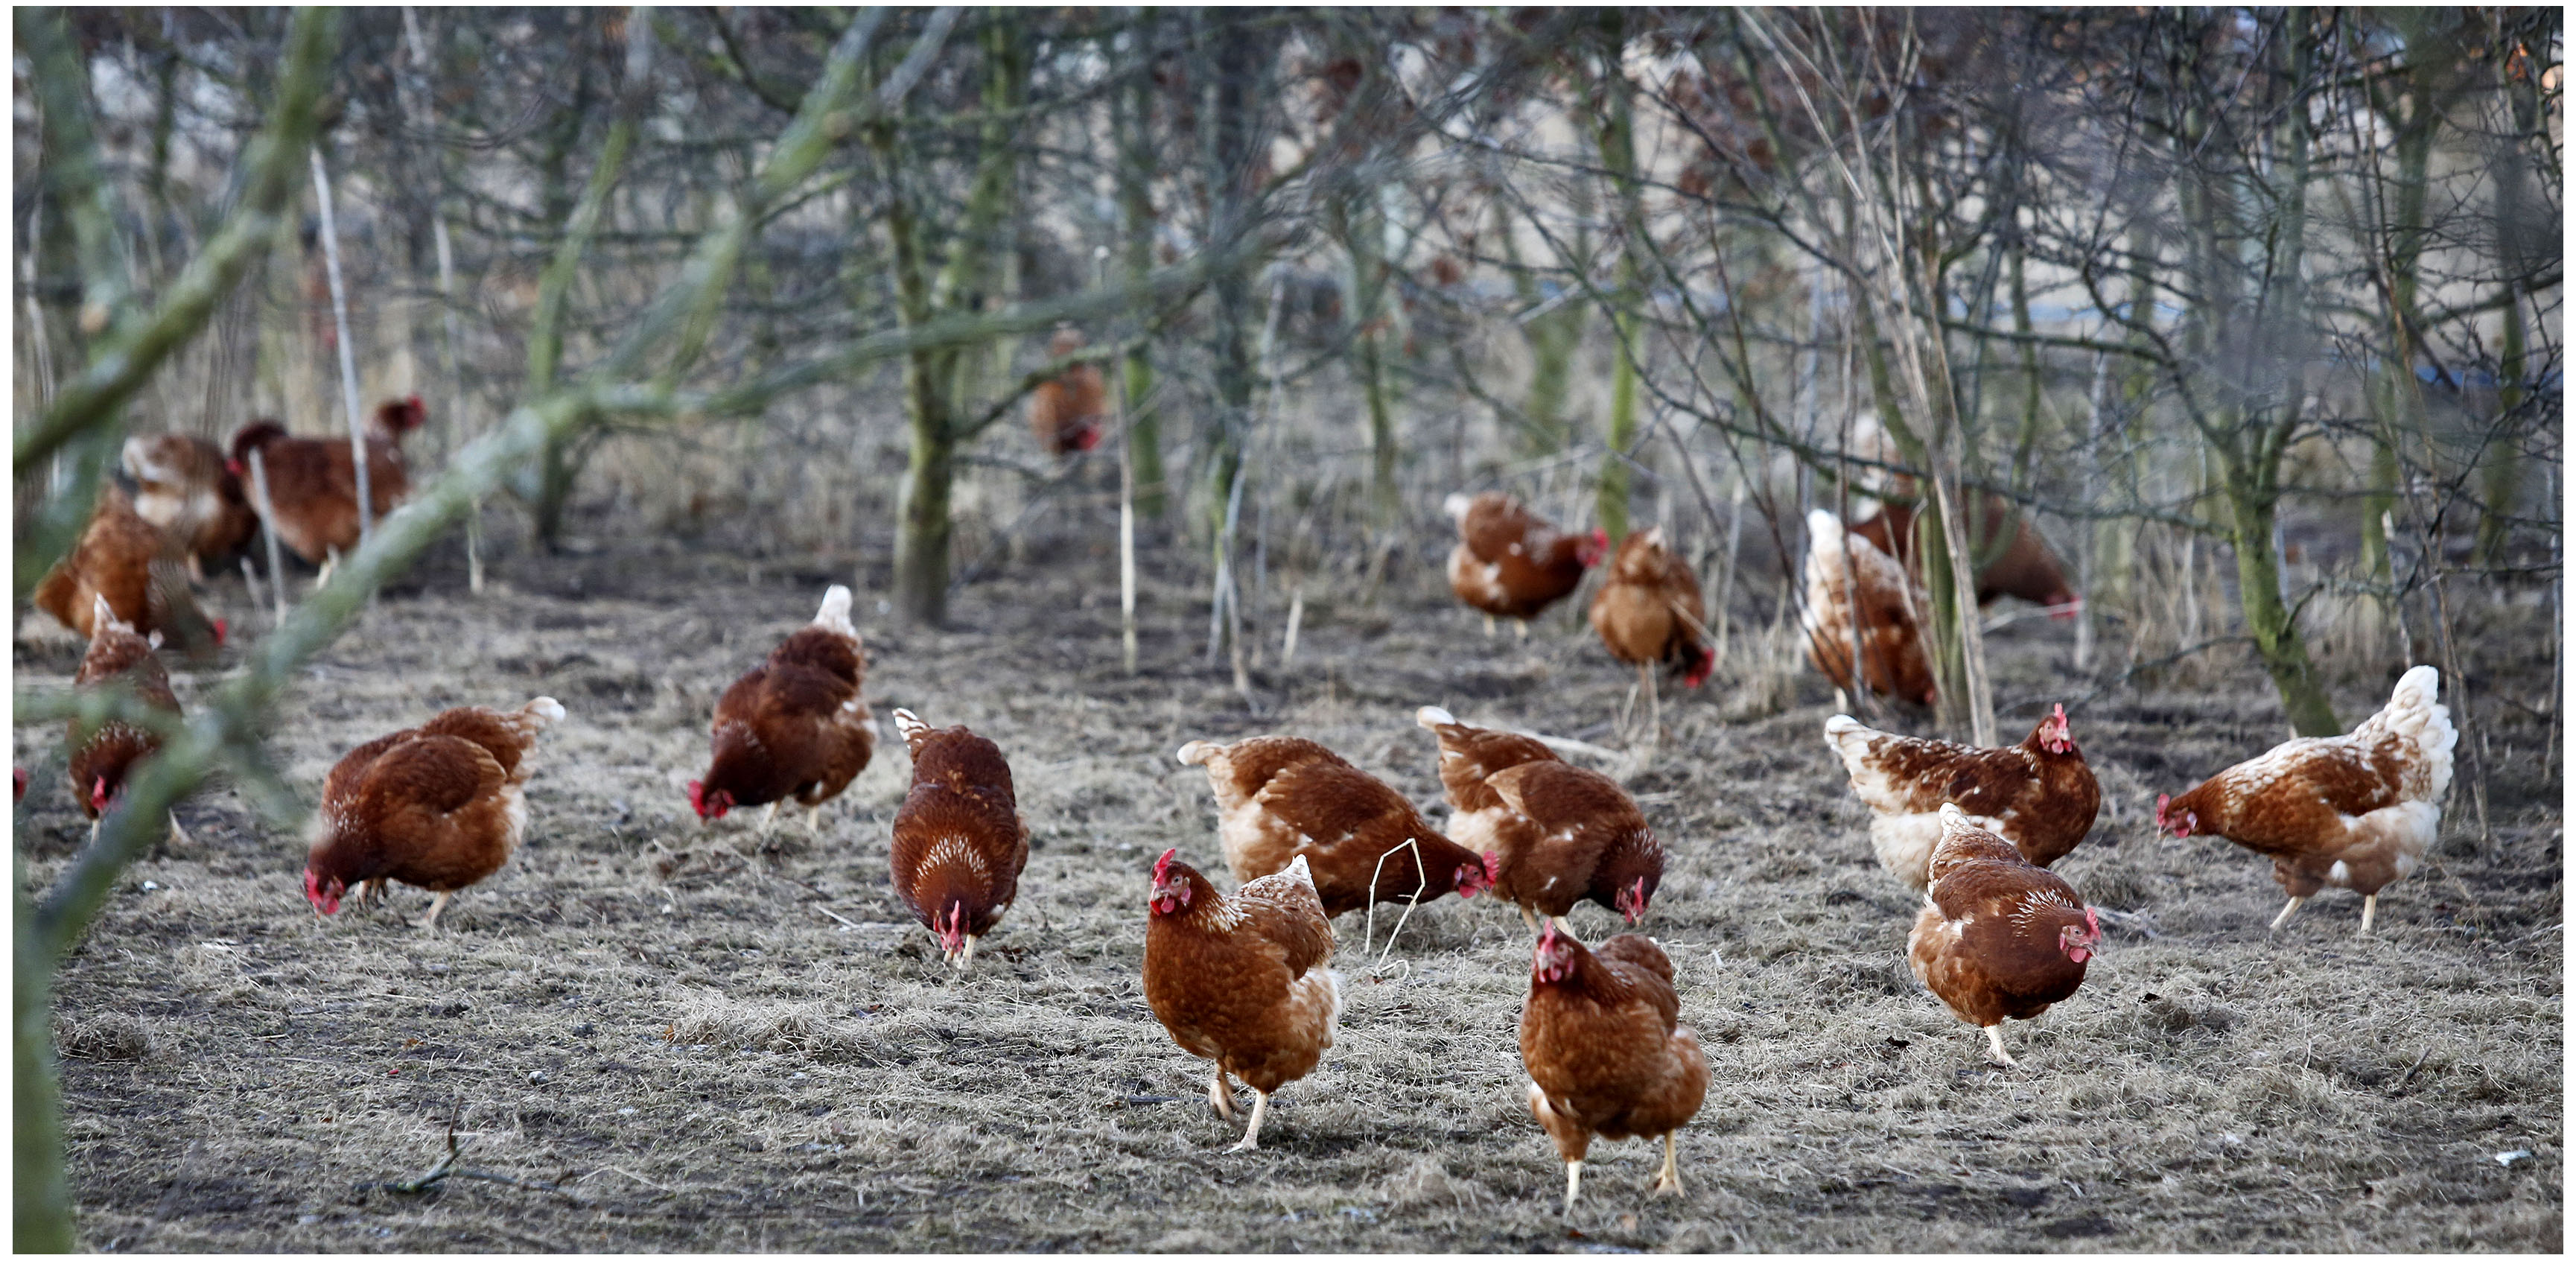 Organic Poultry, Chickens & Eggs   Soil Association